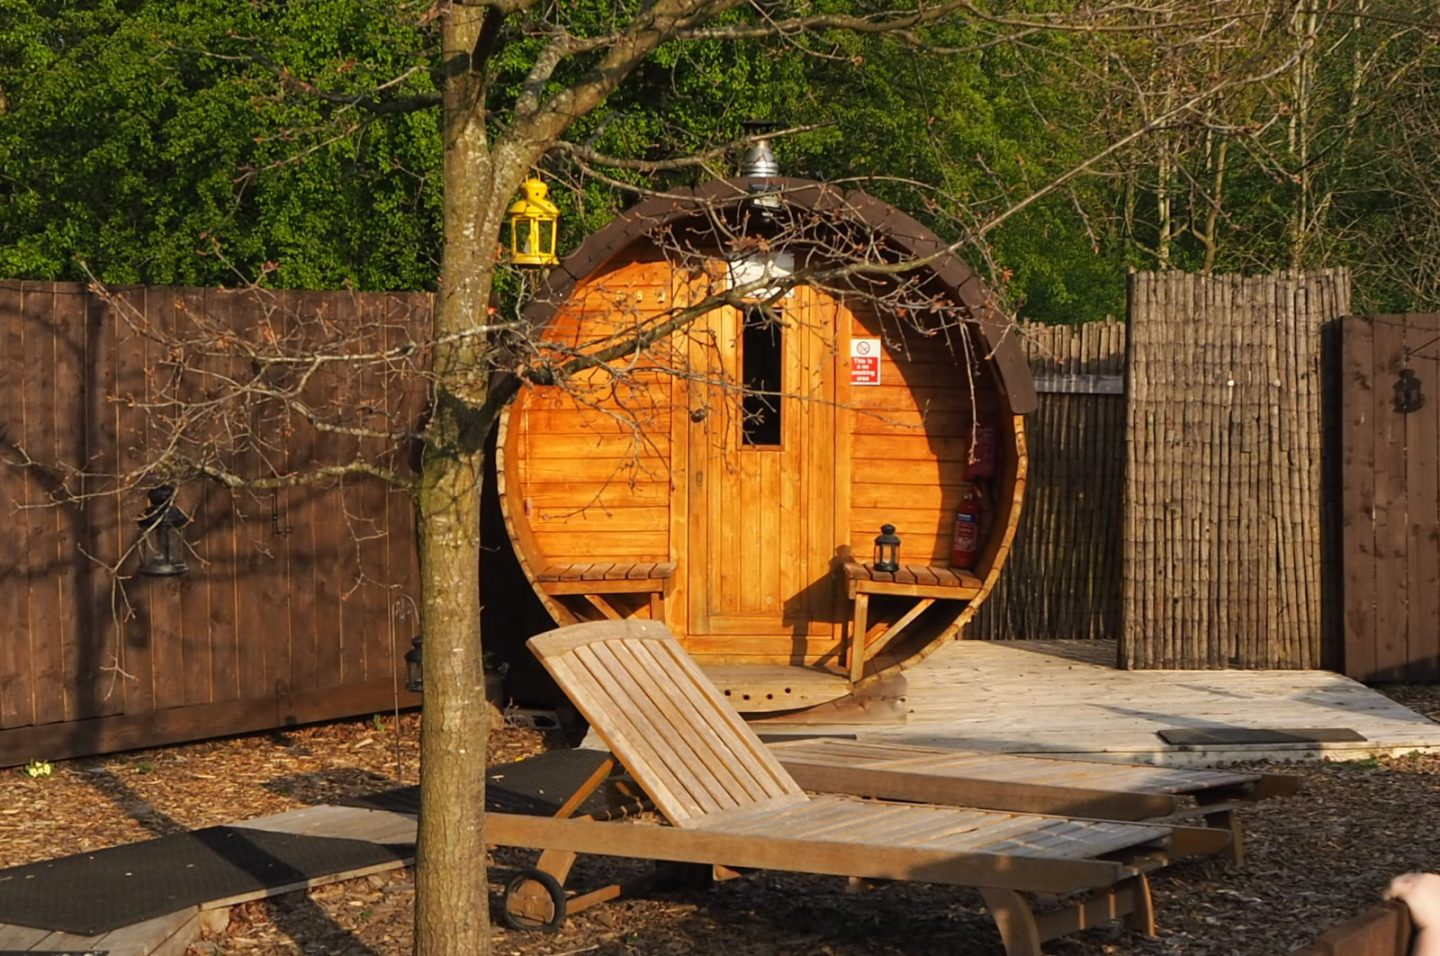 Eco Spa at Camp Katur #UKglamping #CampKatur #safaritent #familytravel